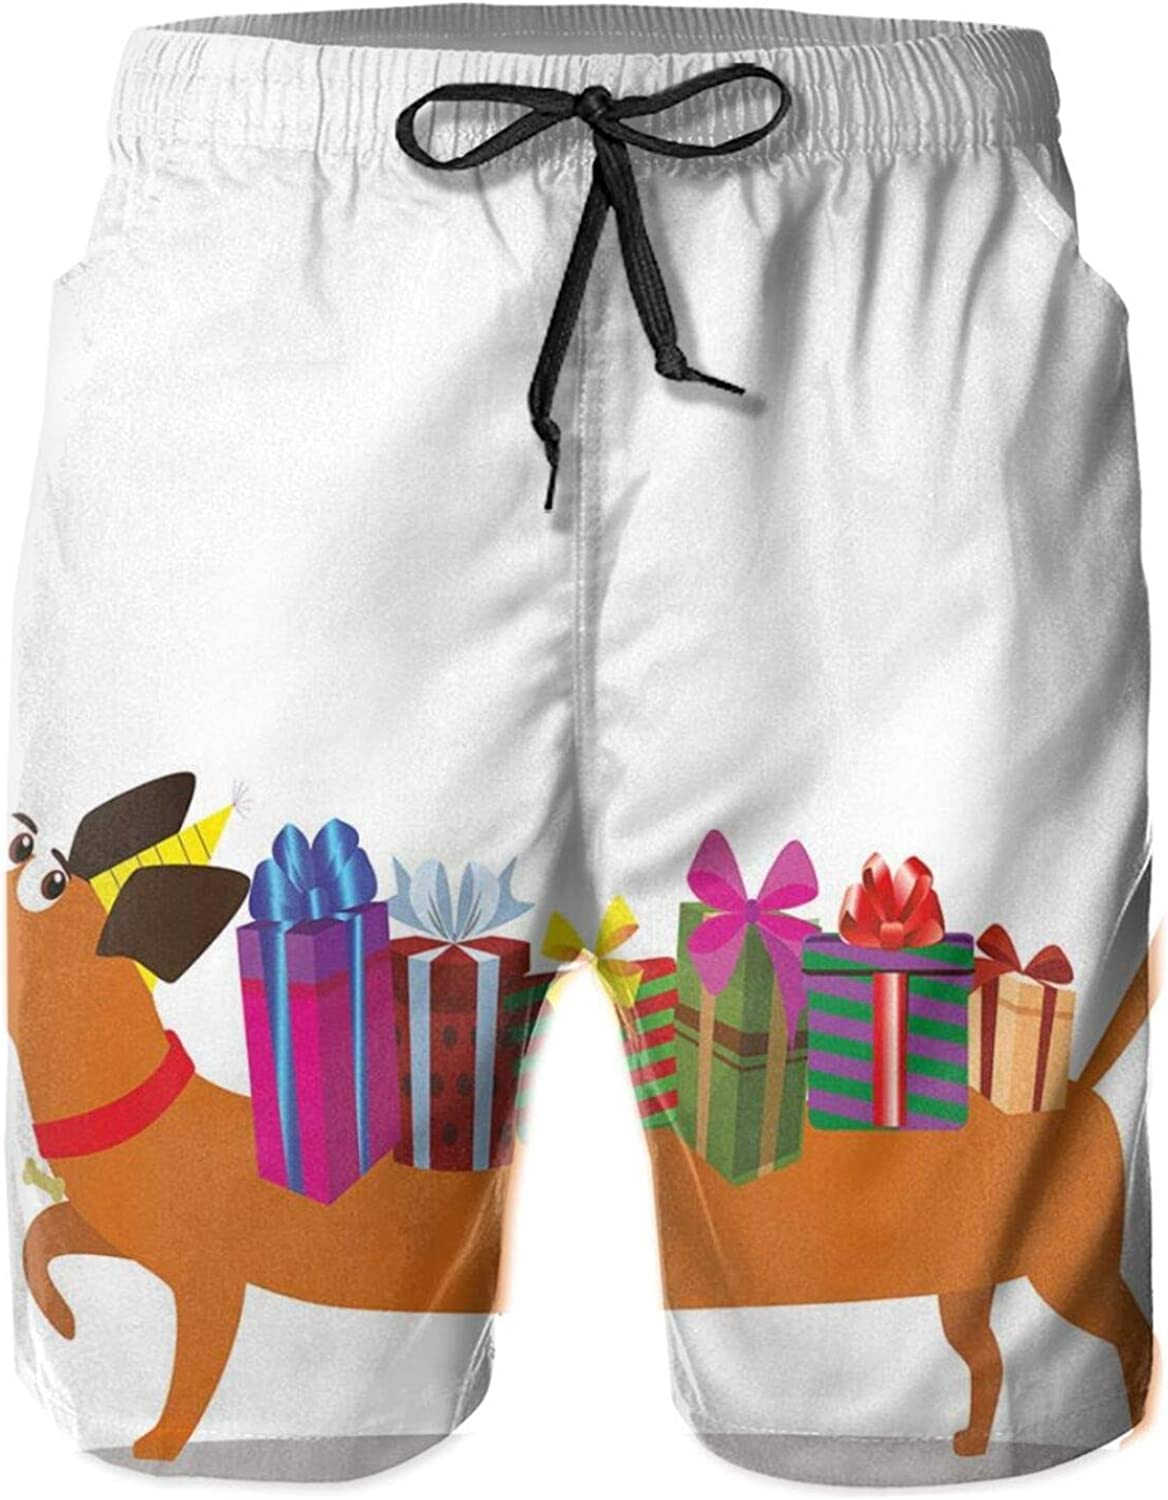 Nursery Themed Cartoon of Sausage Dog with Gift Boxes On Back and Balloon Tail Mens Swim Shorts Casual Workout Short Pants Drawstring Beach Shorts,M